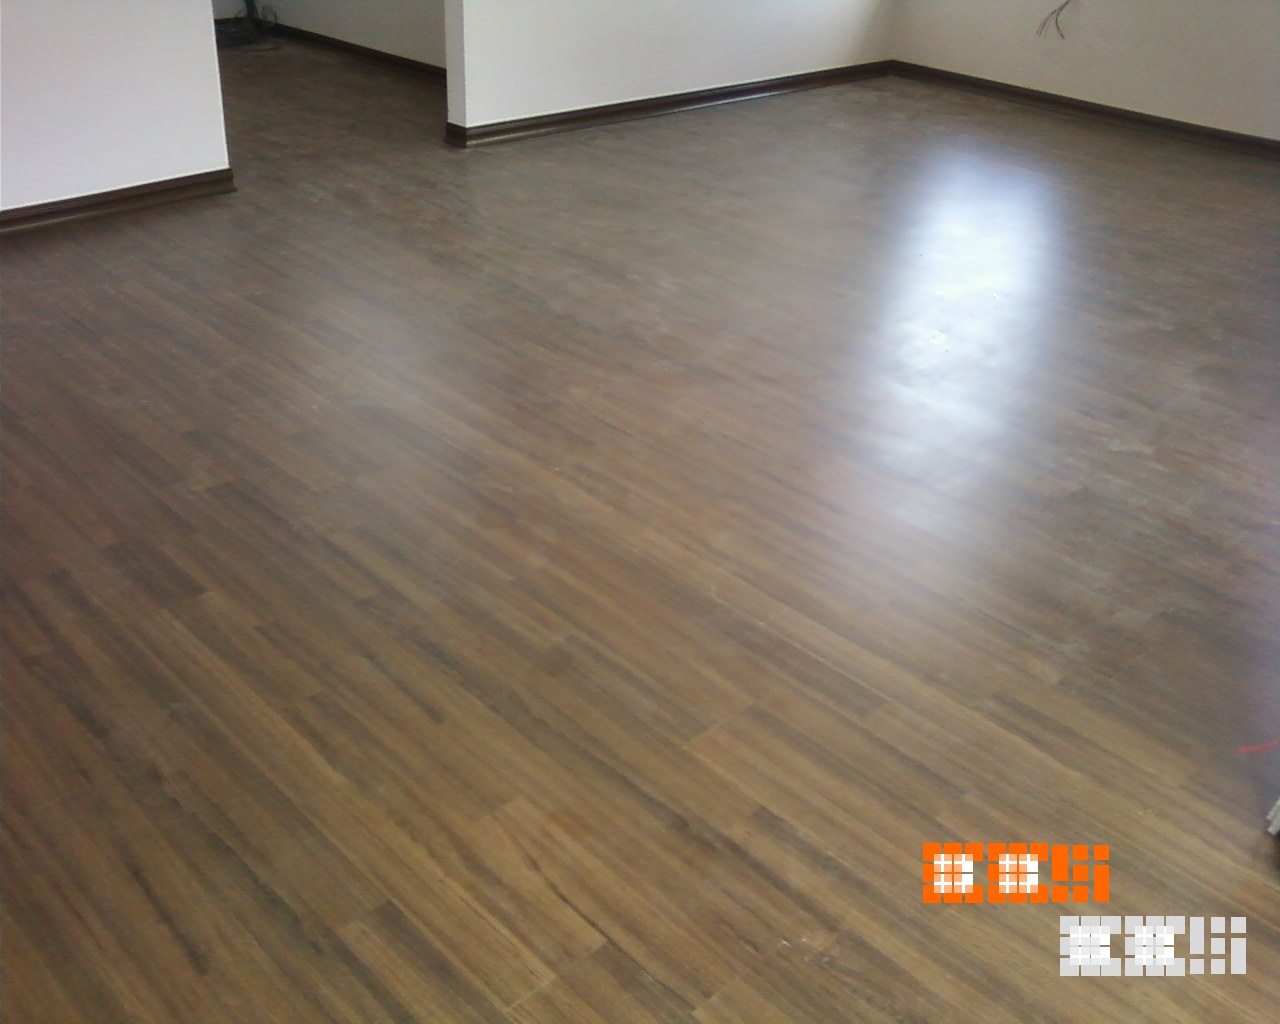 Laminate flooring laminate flooring description for Floor description